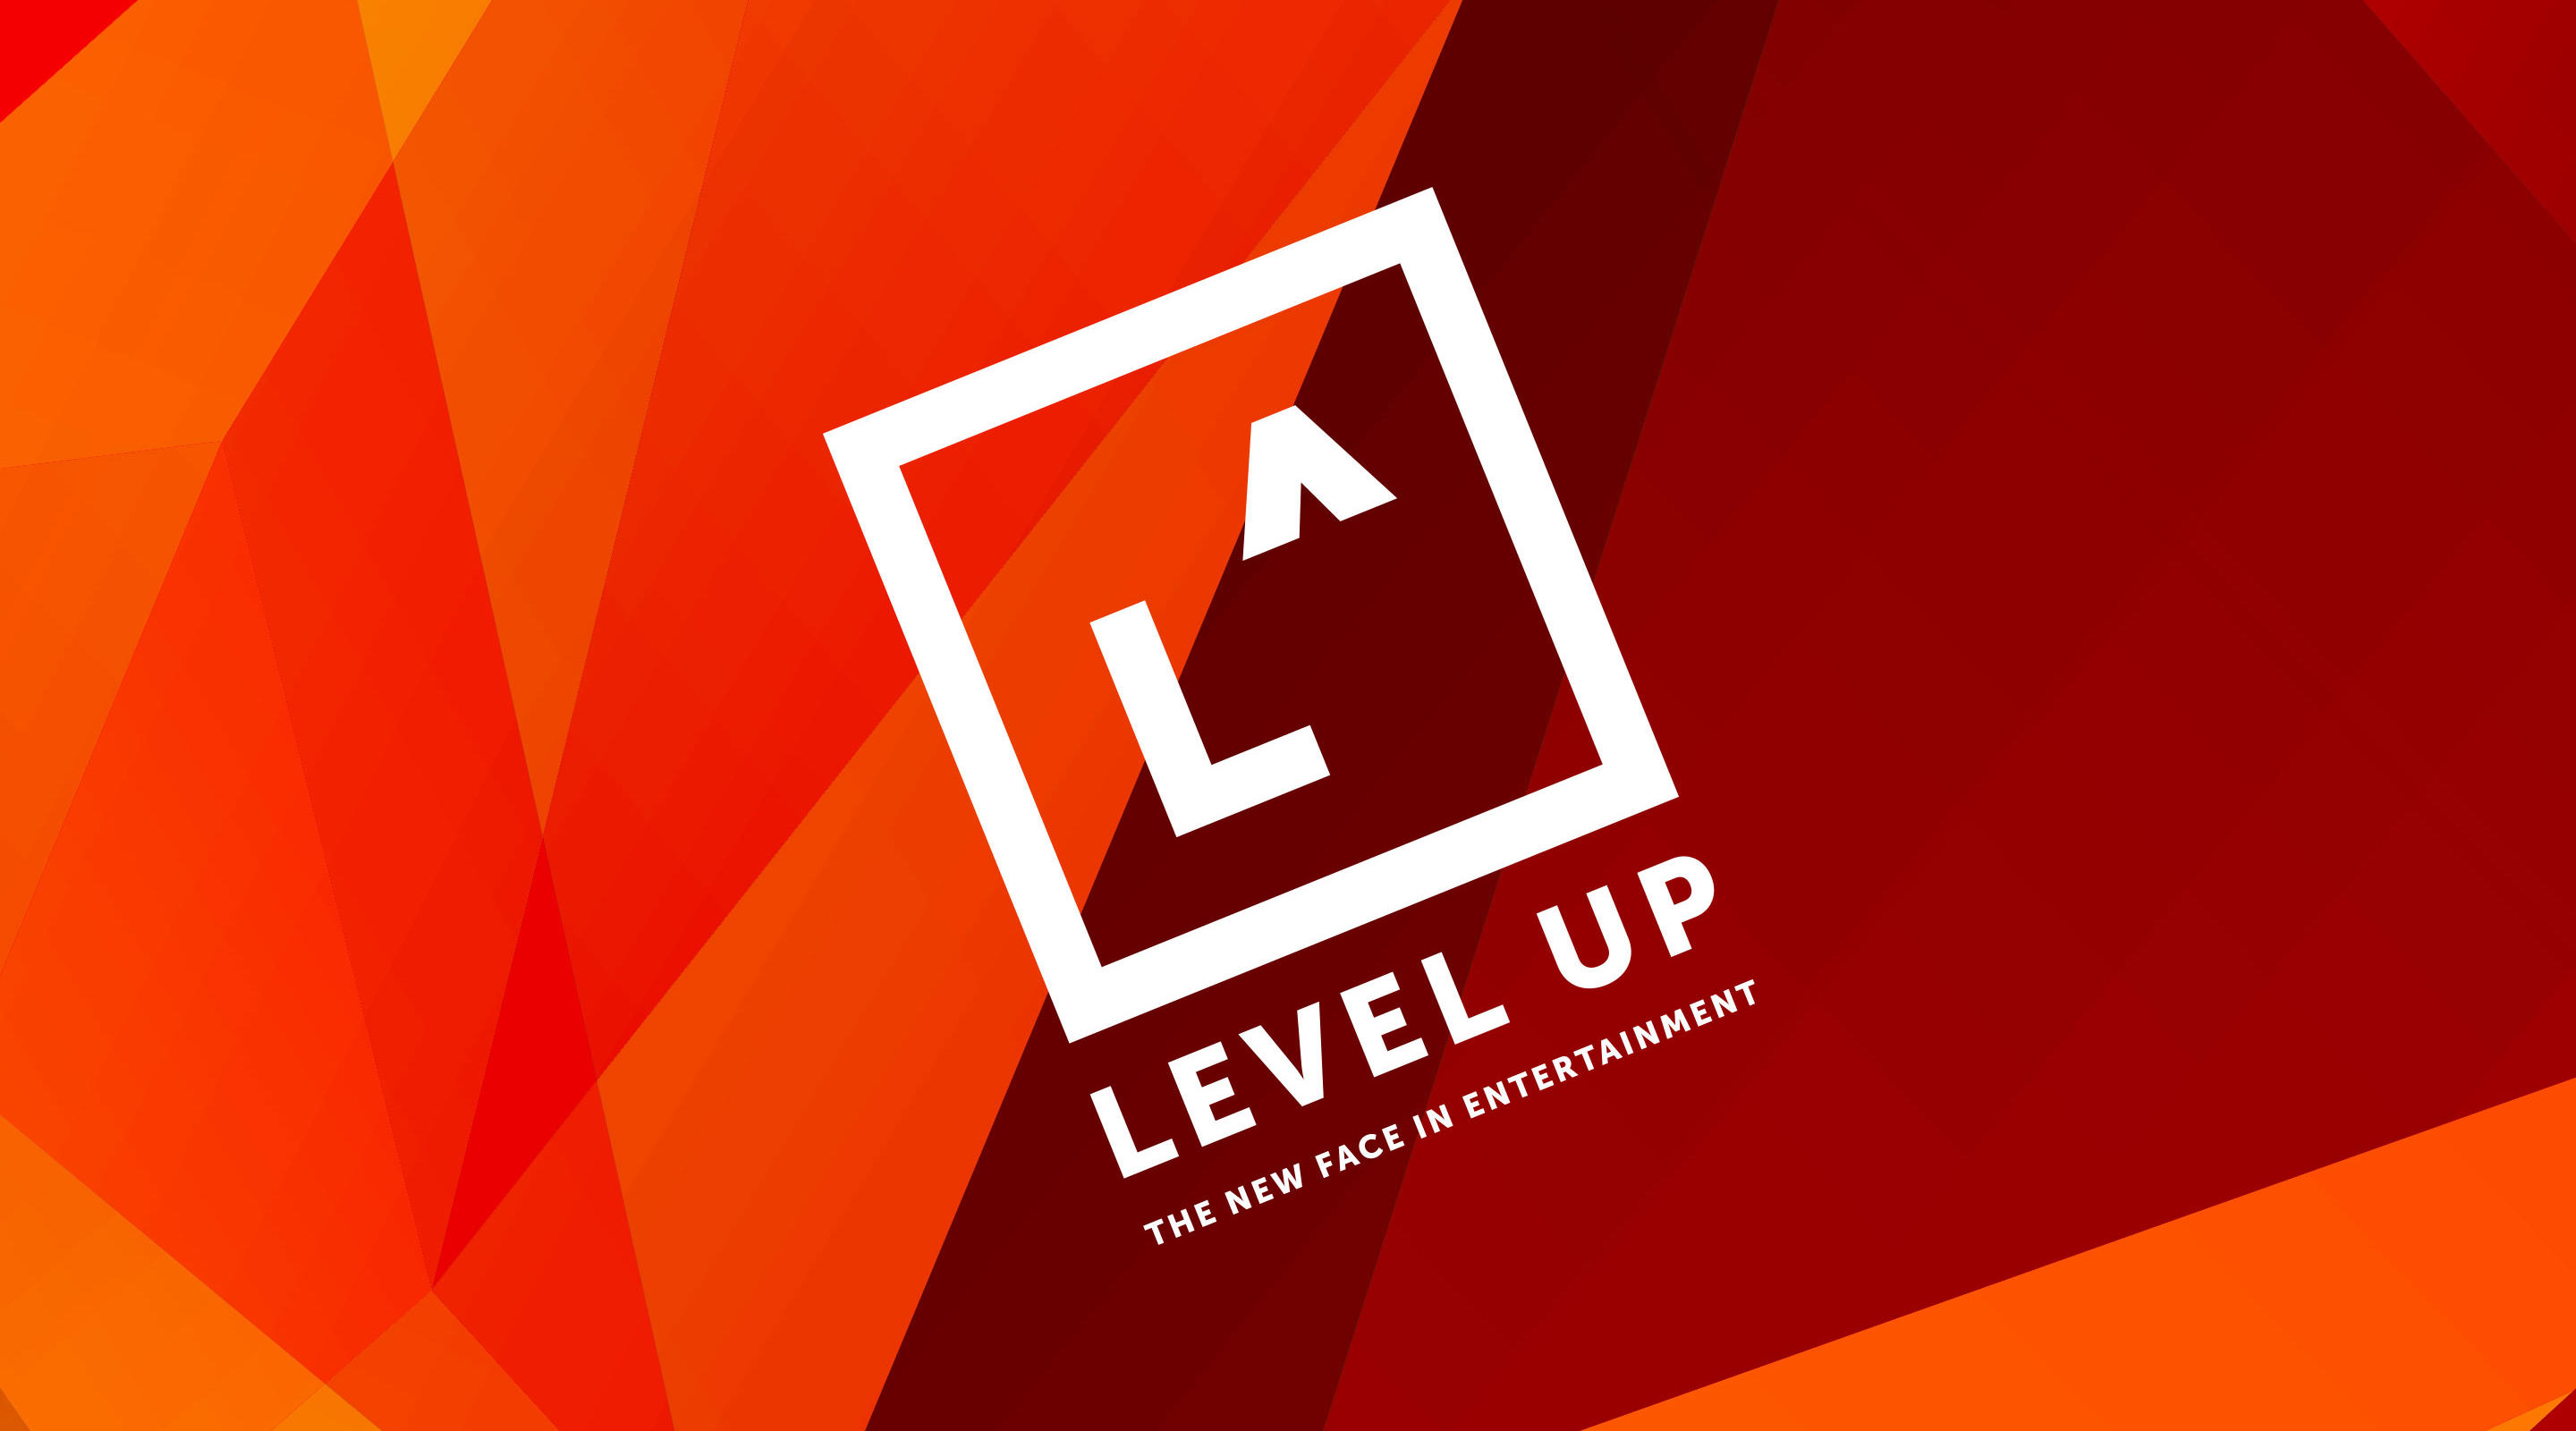 Level Up Mgm Resorts